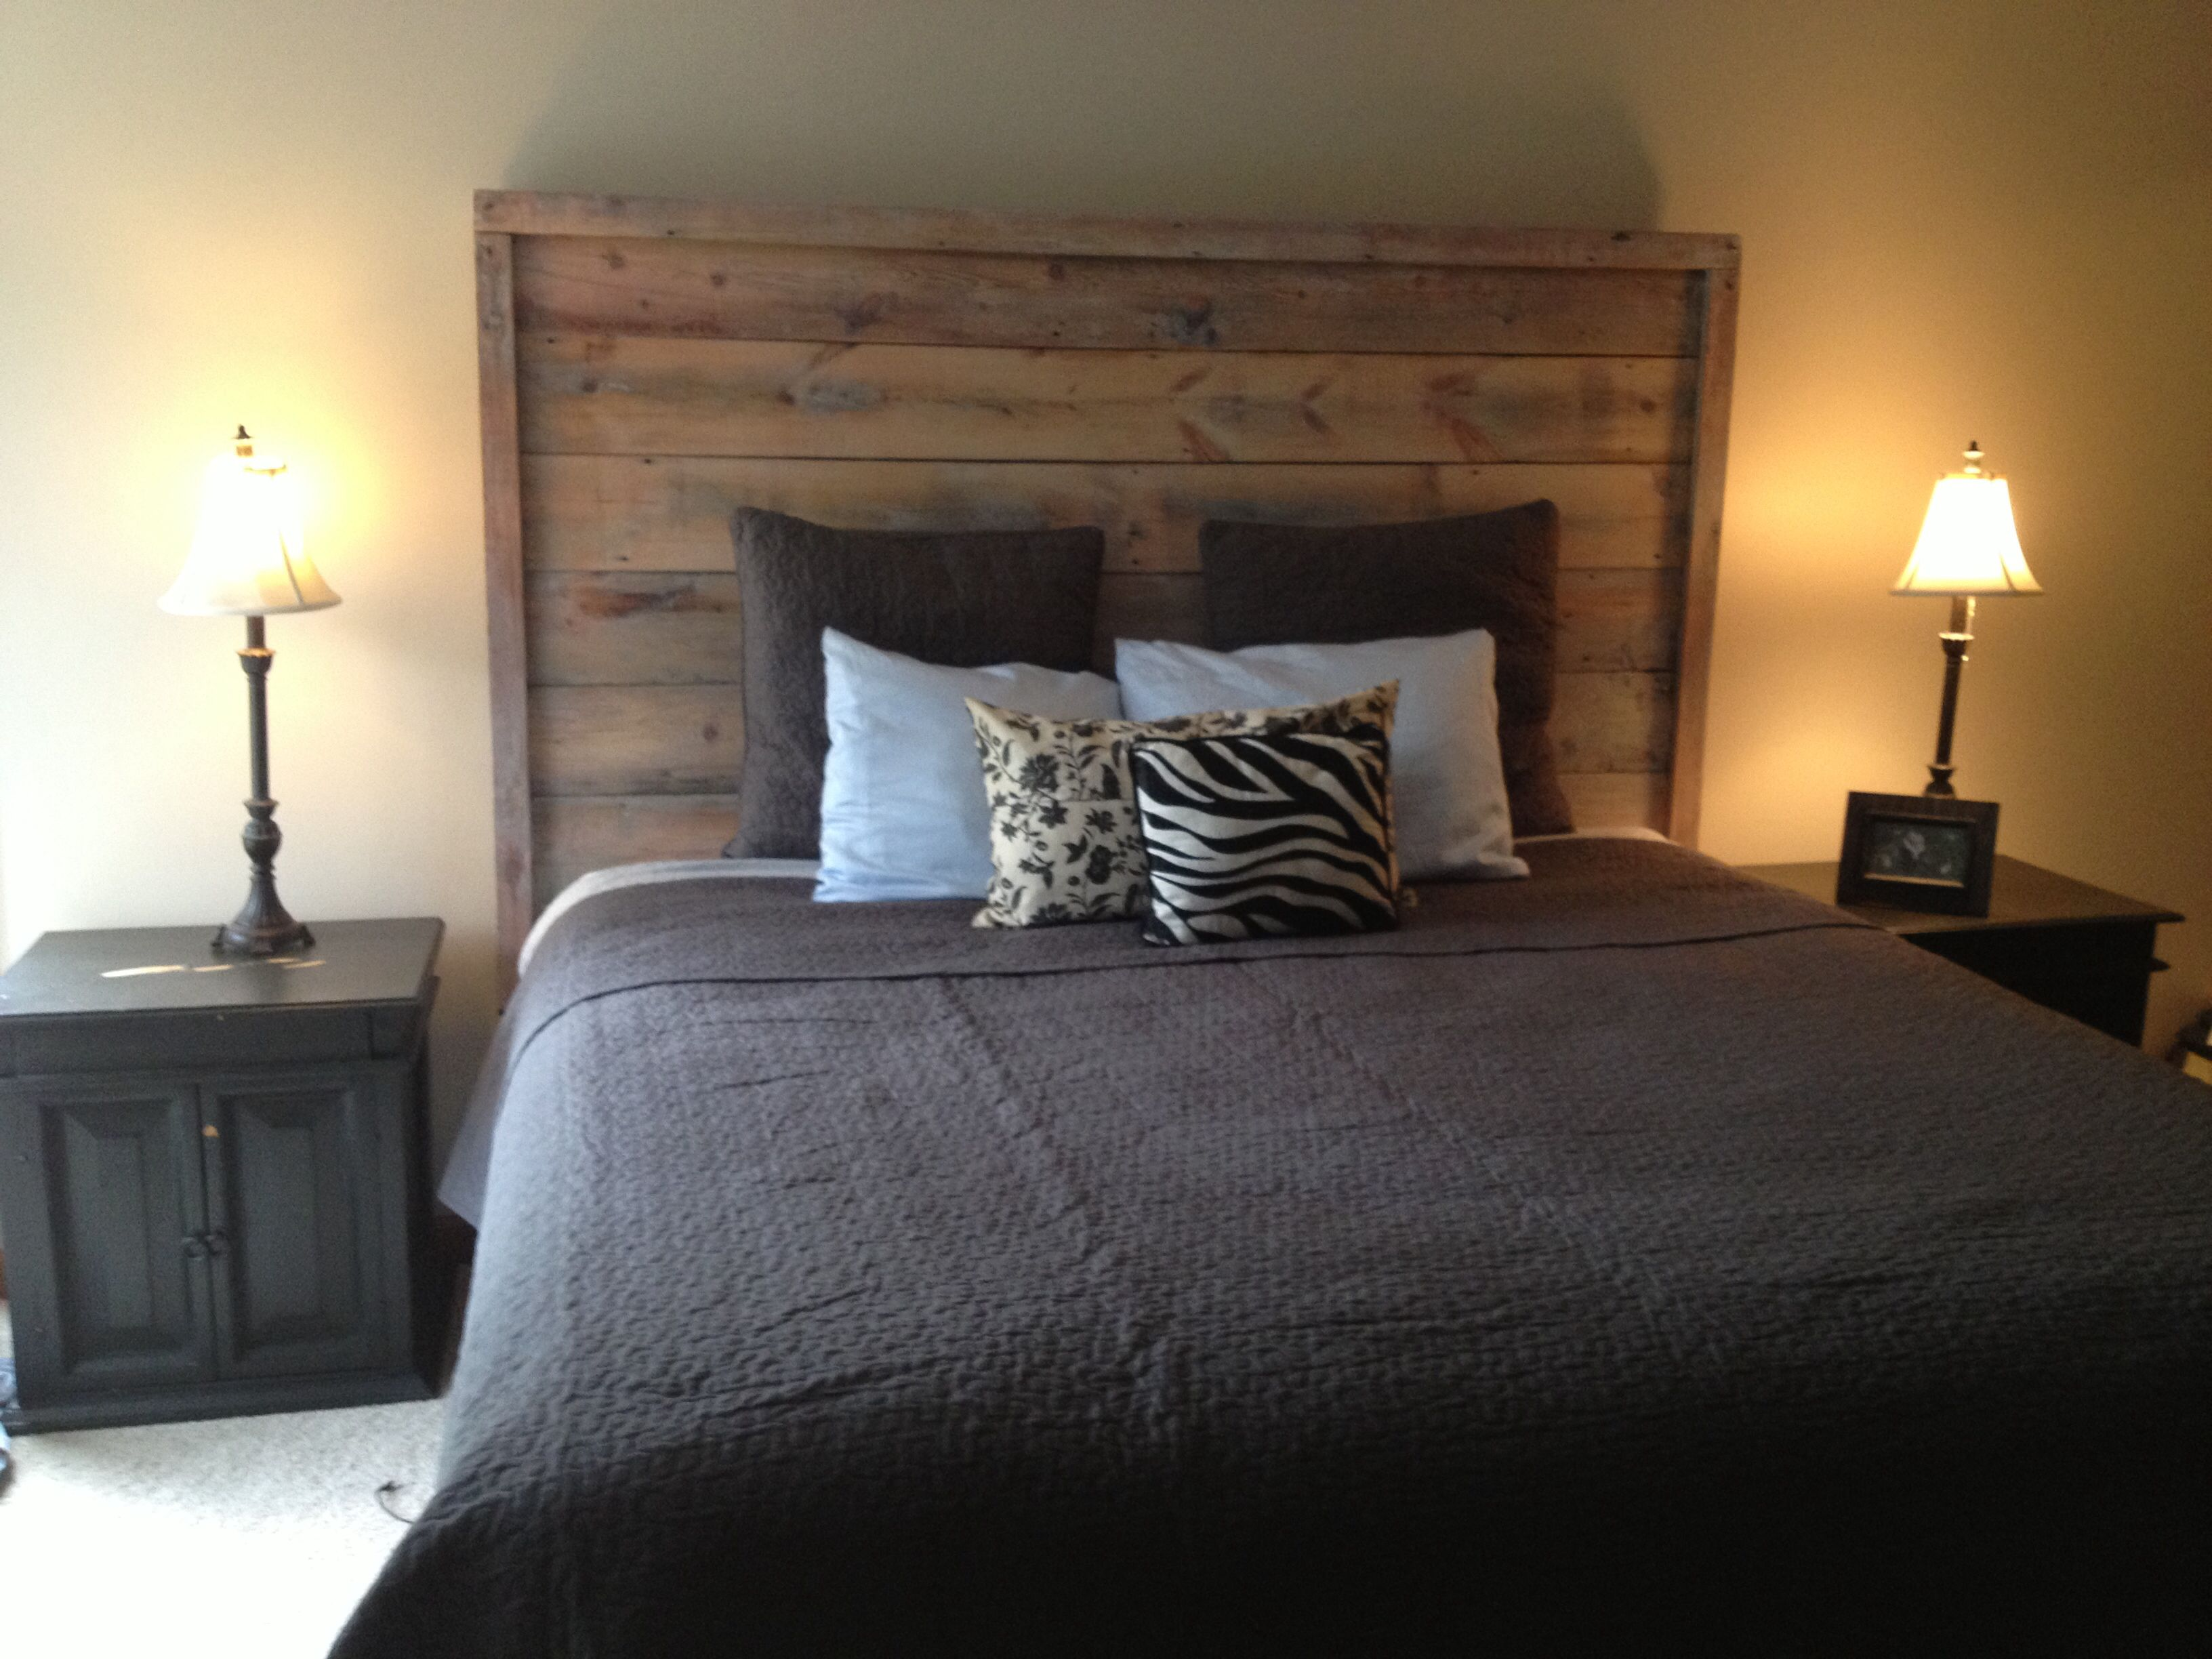 59 Incredibly Simple Rustic Décor Ideas That Can Make Your: Reclaimed Barn Wood Headboard.